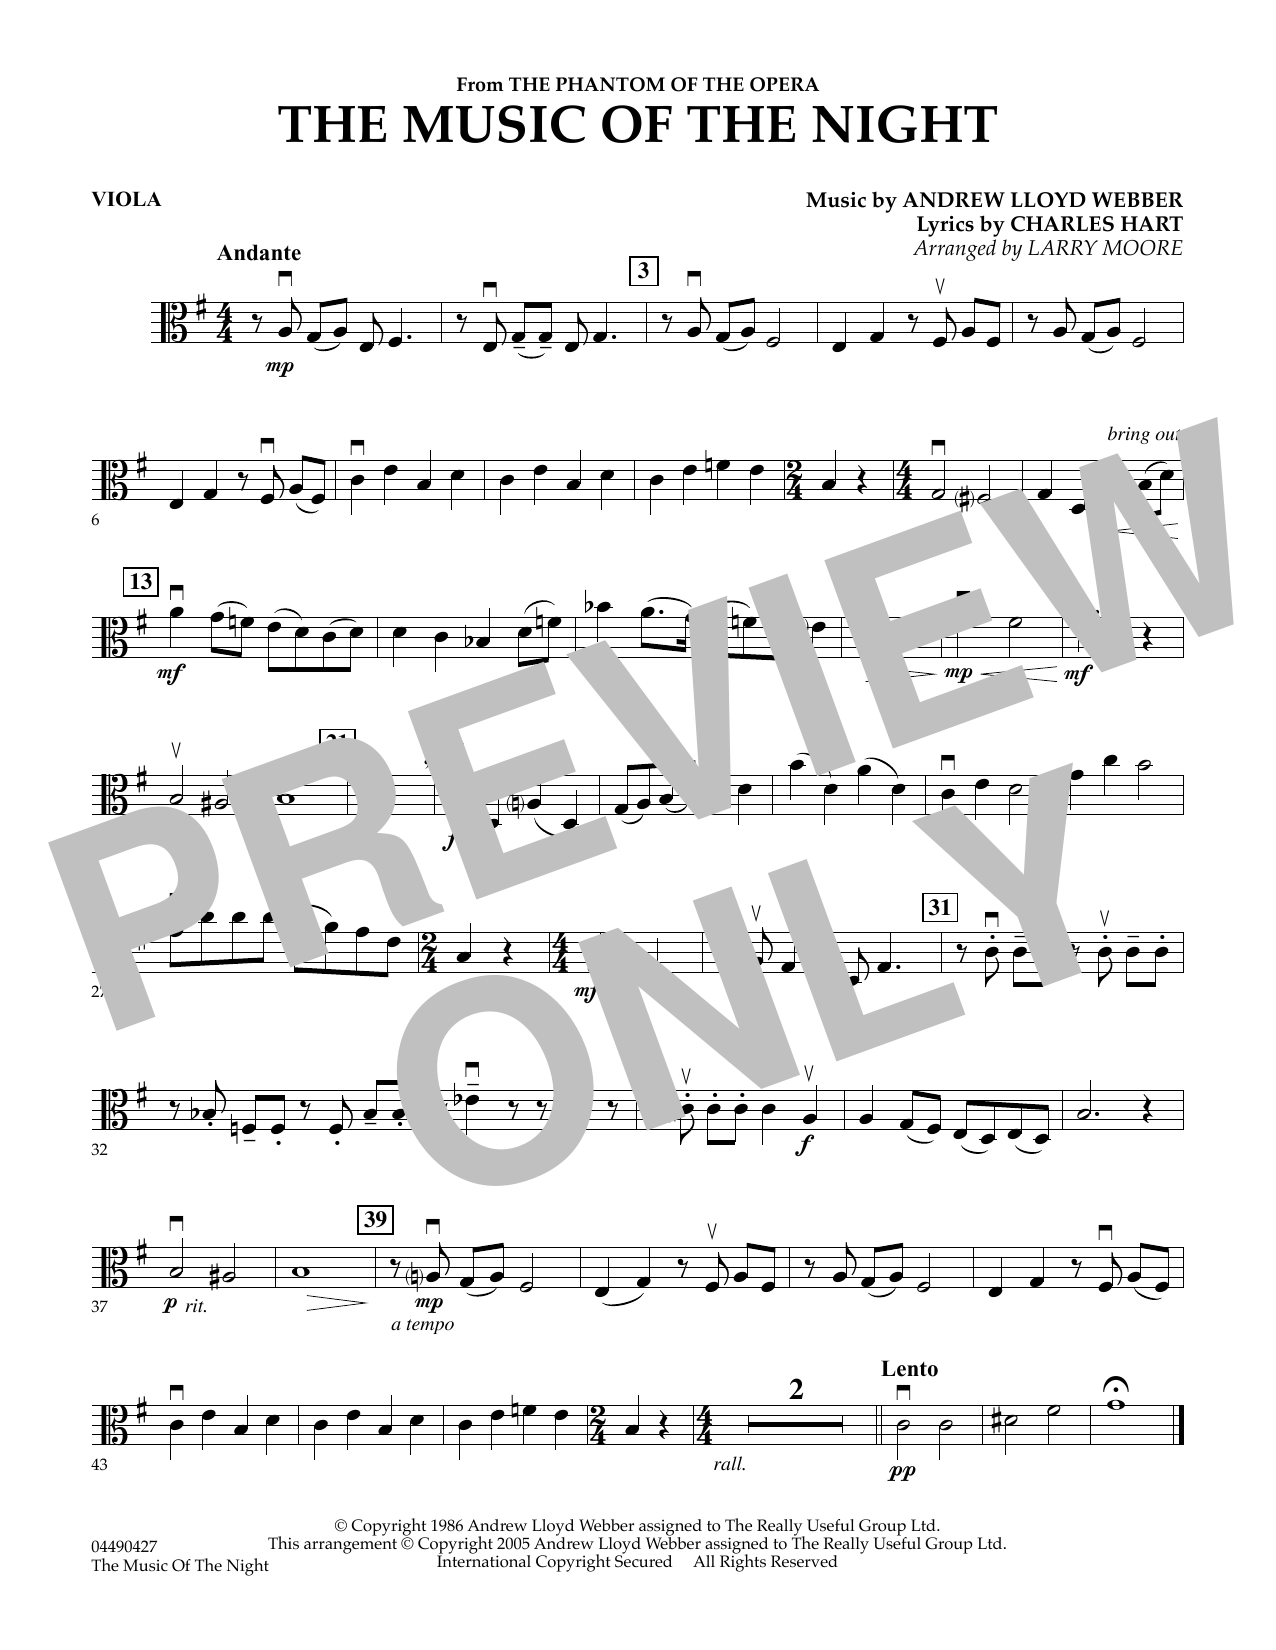 Larry Moore The Music of the Night (from The Phantom of the Opera) - Viola sheet music notes and chords. Download Printable PDF.